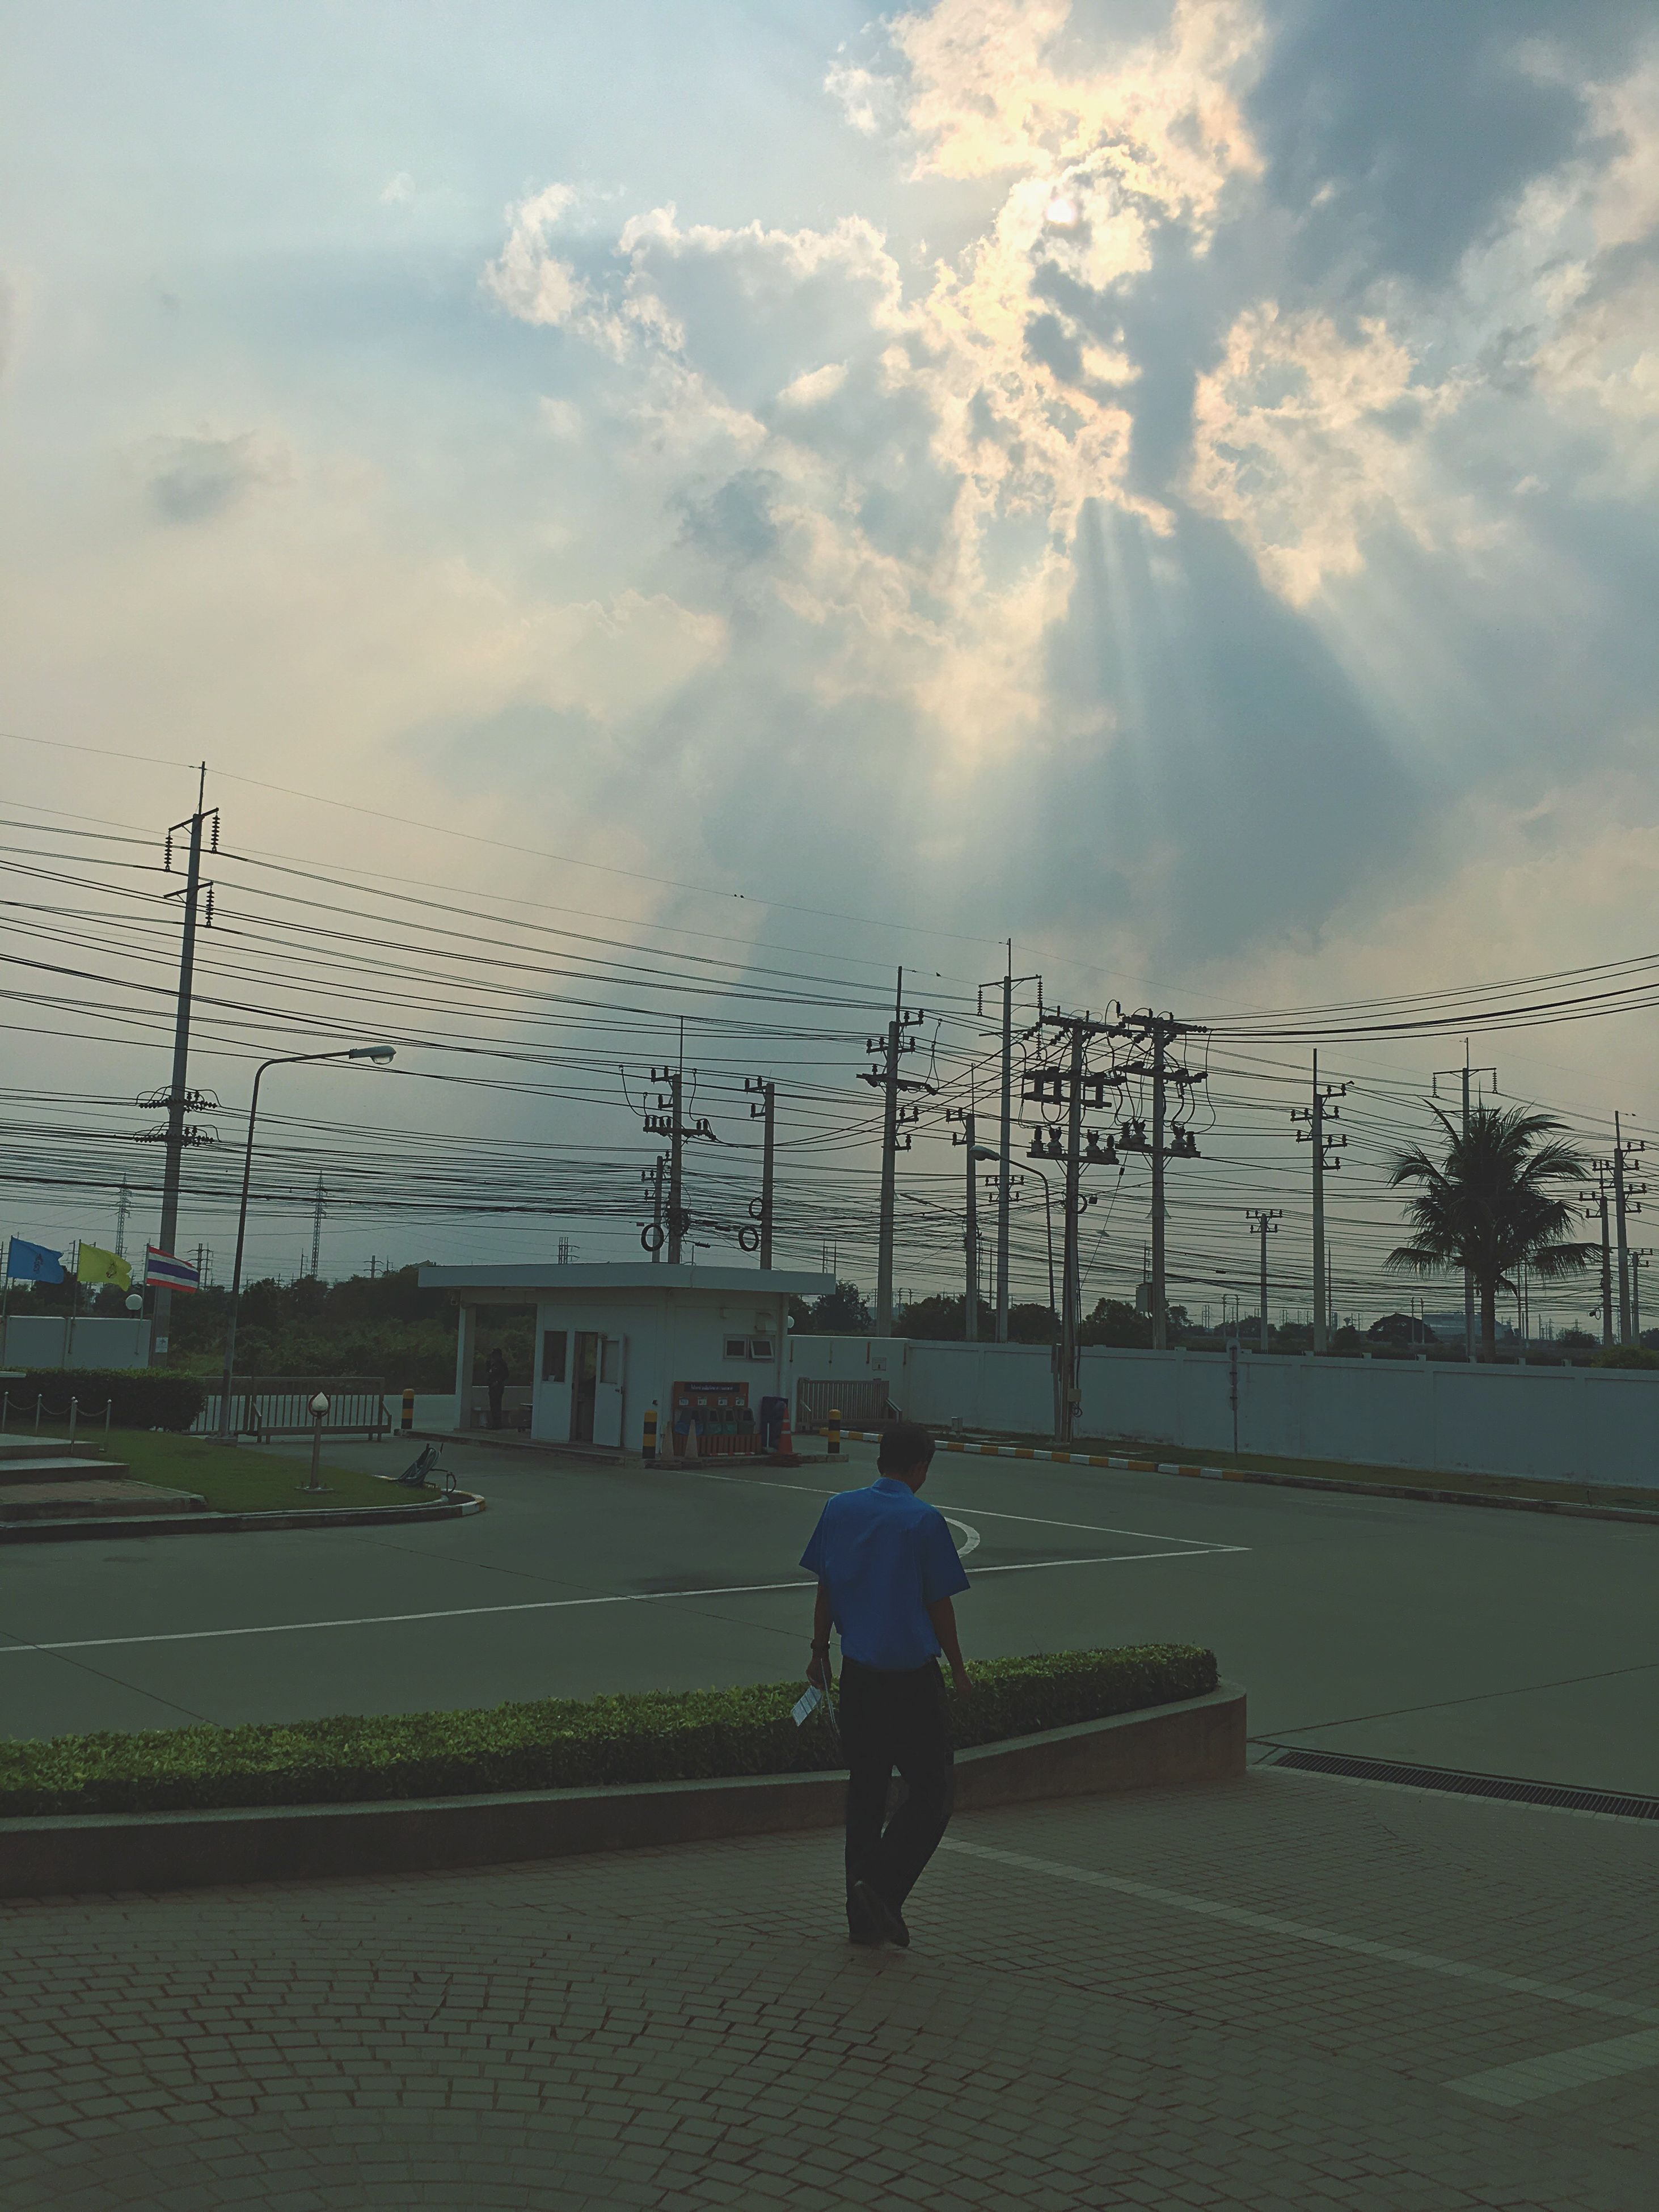 sky, full length, rear view, men, built structure, lifestyles, building exterior, architecture, transportation, leisure activity, walking, cloud - sky, railing, street, city, person, day, road